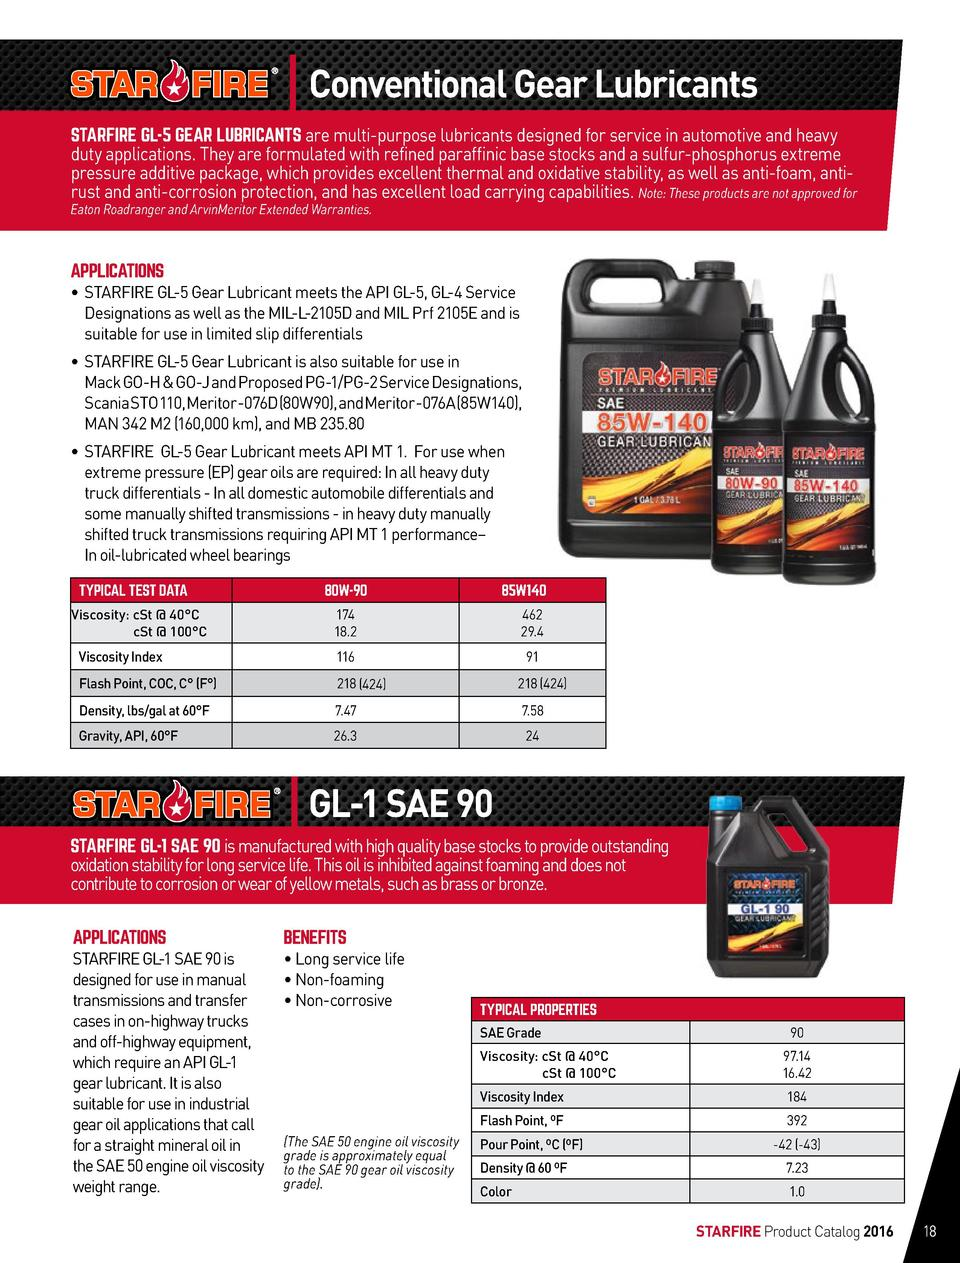 Conventional Gear Lubricants STARFIRE GL-5 GEAR LUBRICANTS are multi-purpose lubricants designed for service in automotive...